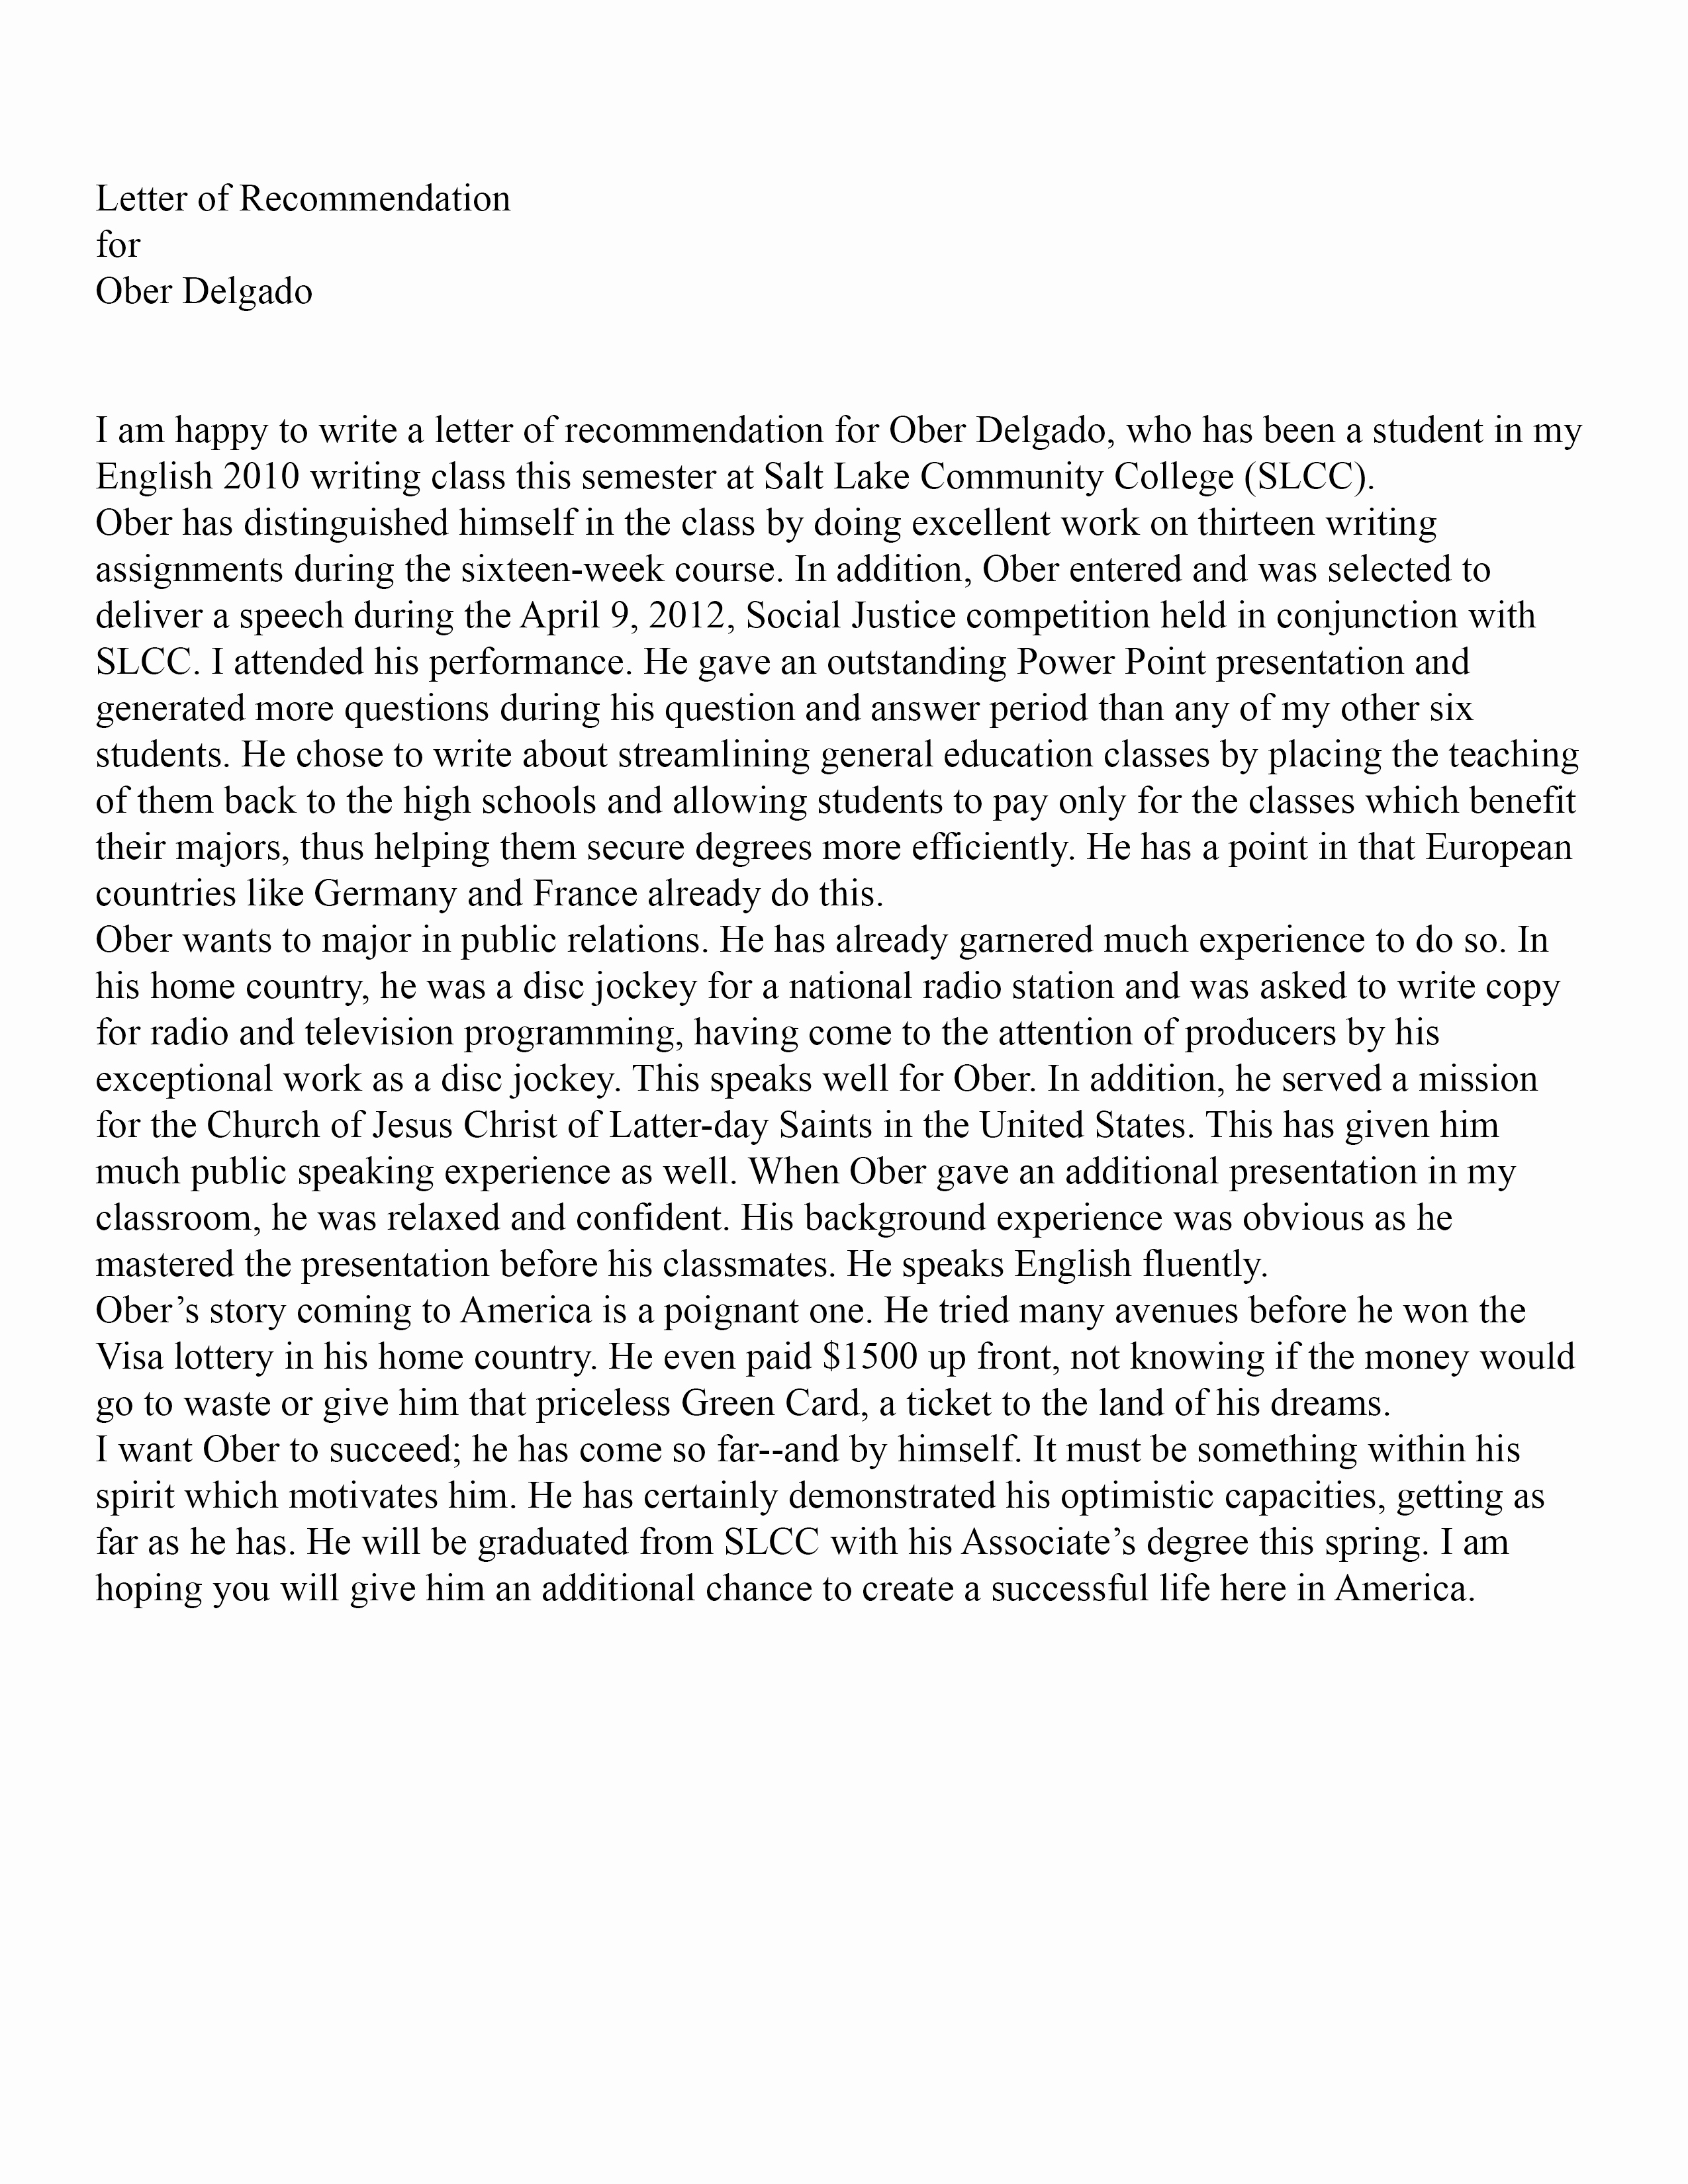 Letter Of Recommendation From Professor Elegant 301 Moved Permanently